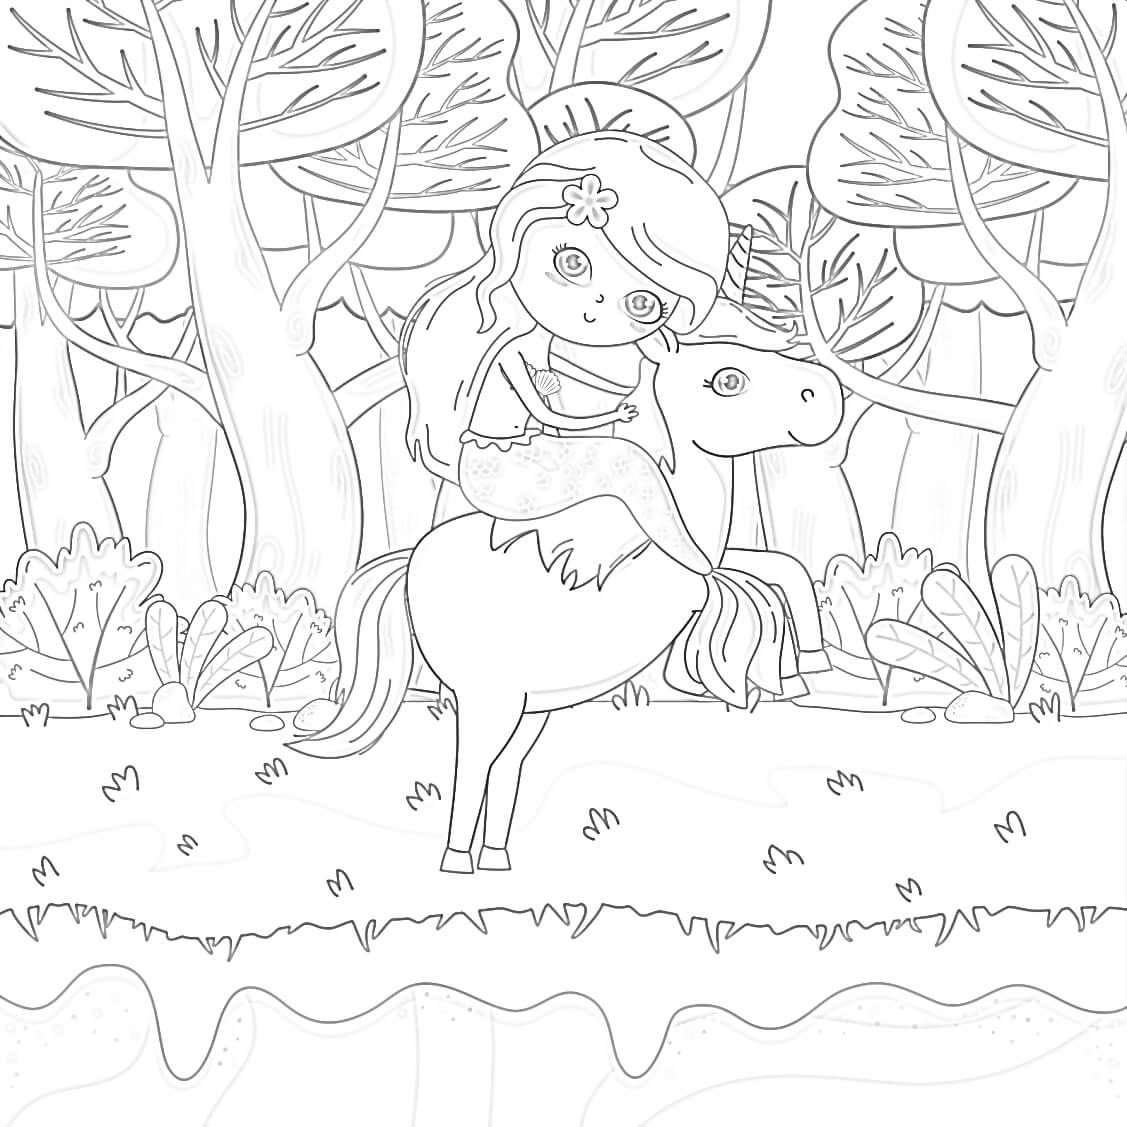 Mermaid and Unicorn Coloring Page